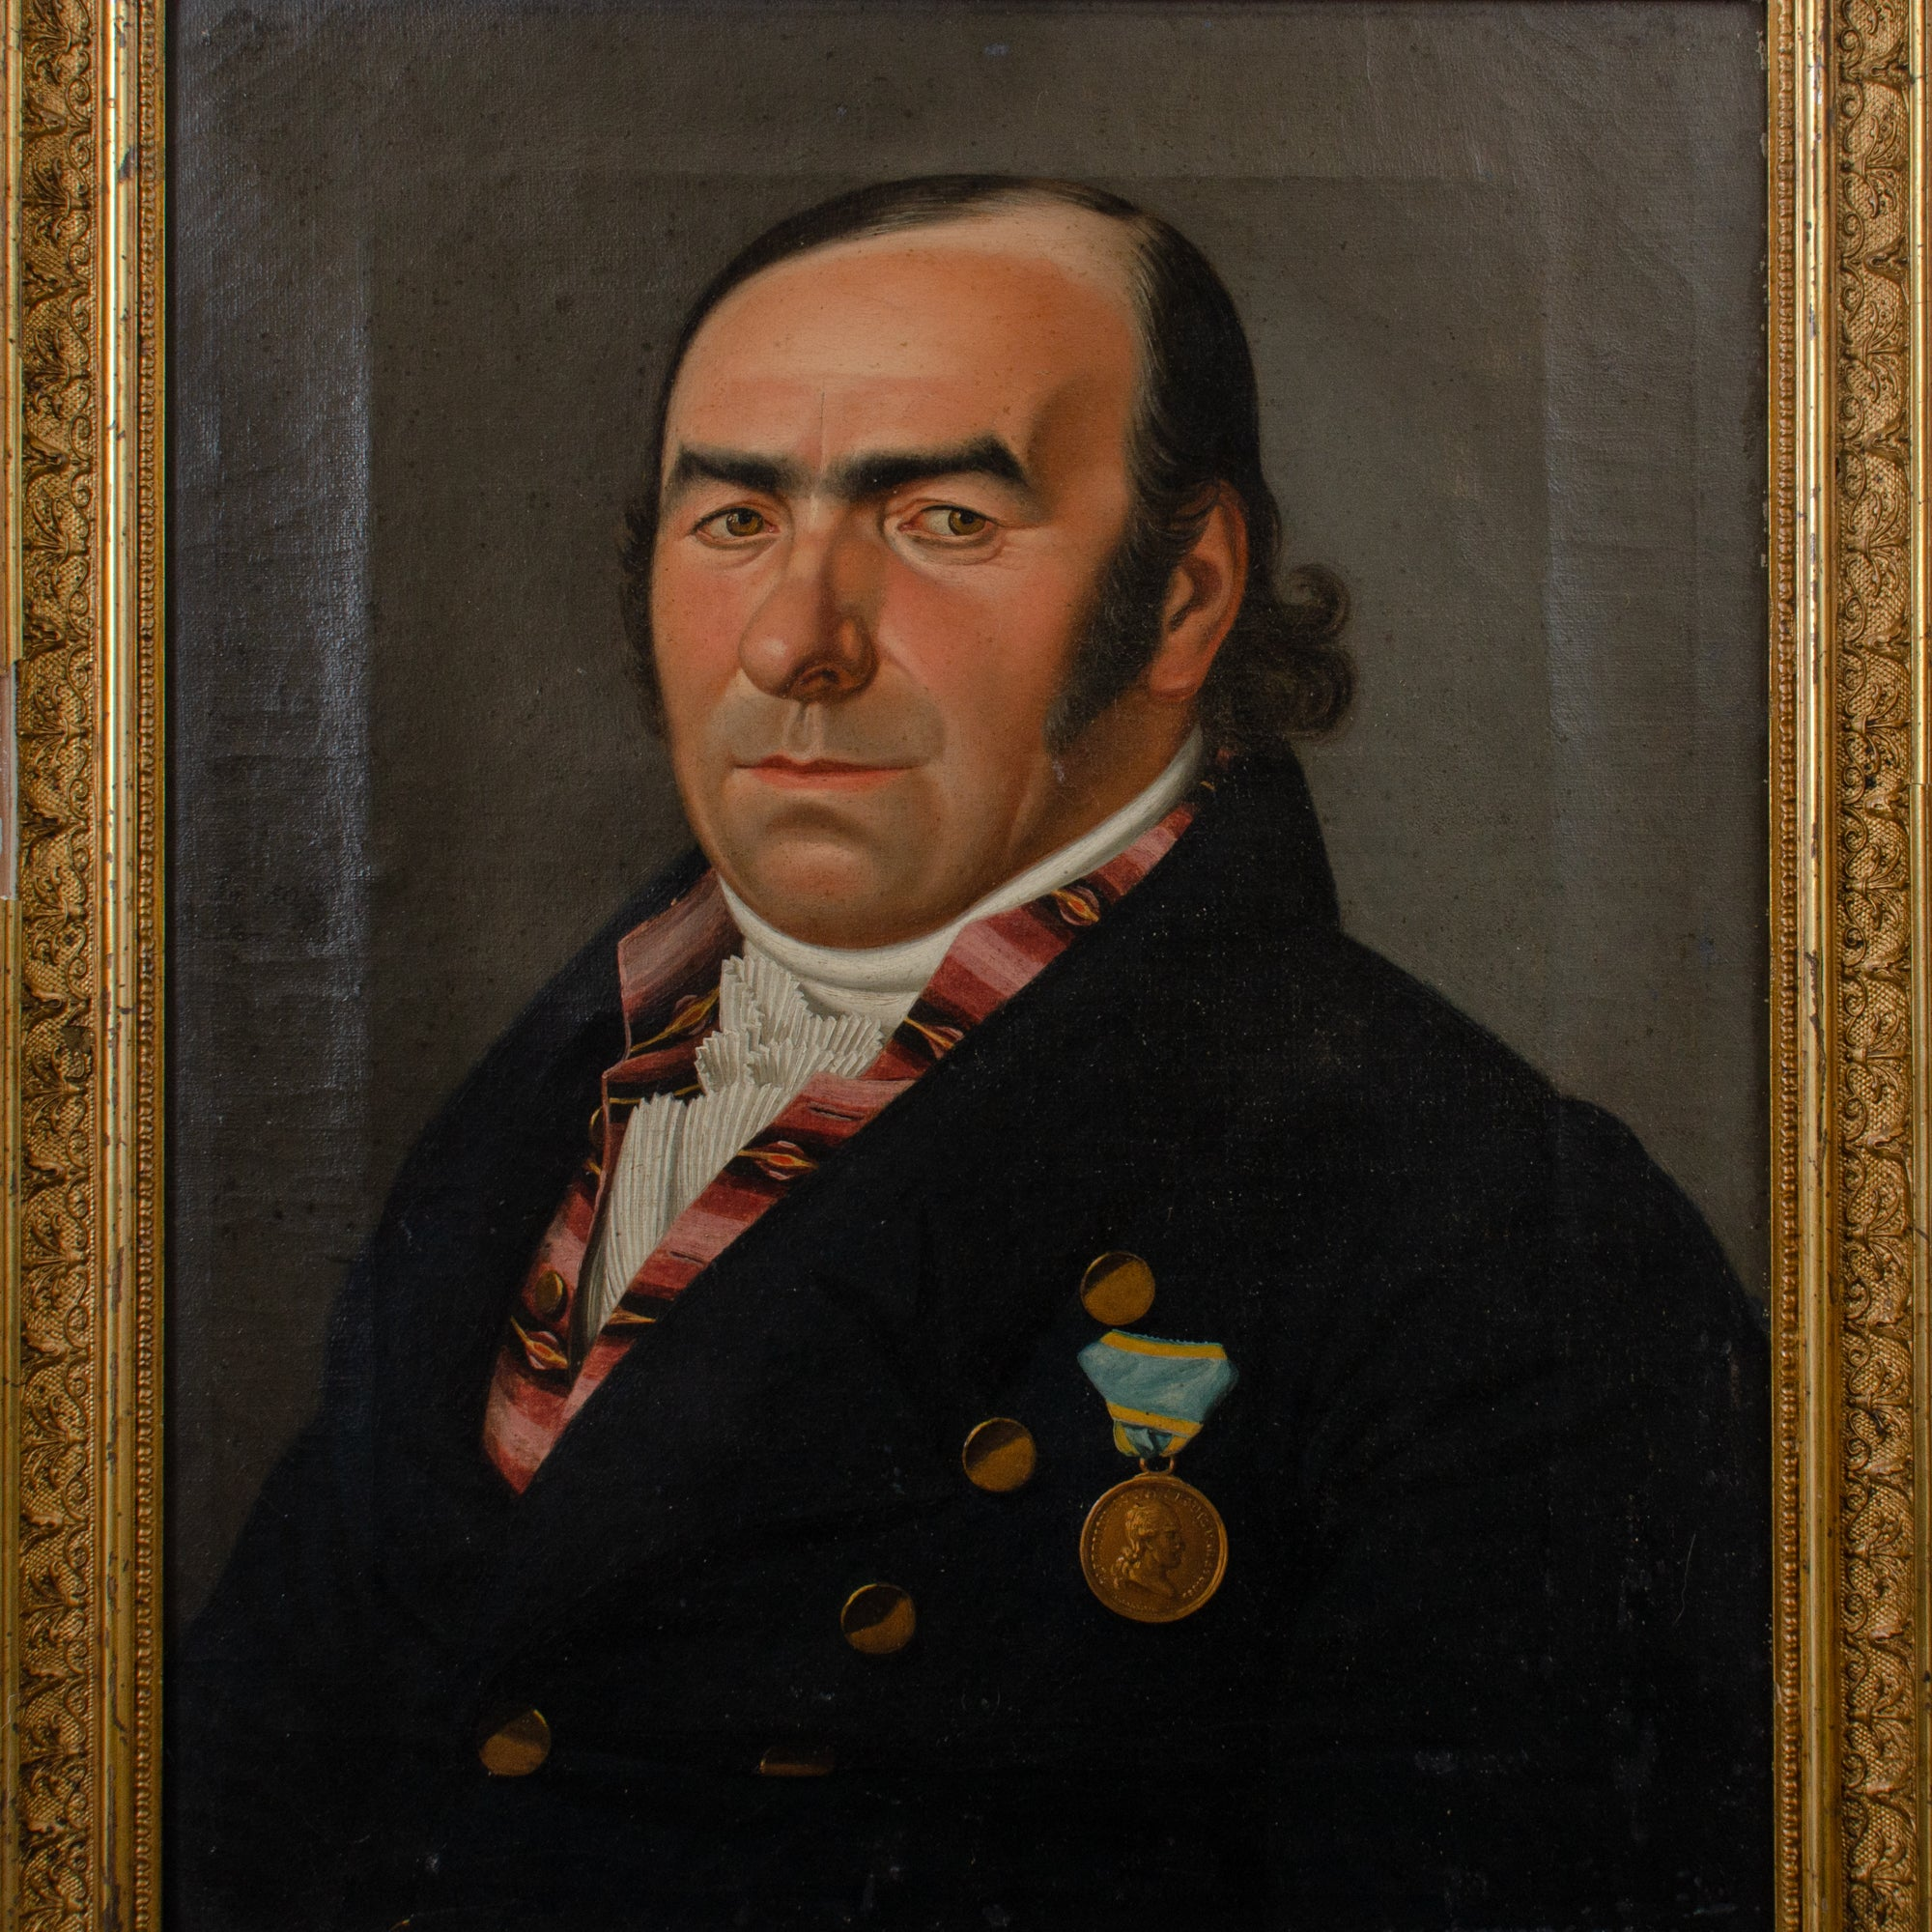 Biedermeier Portrait of a Gentleman by Gustav Albrecht Traeger